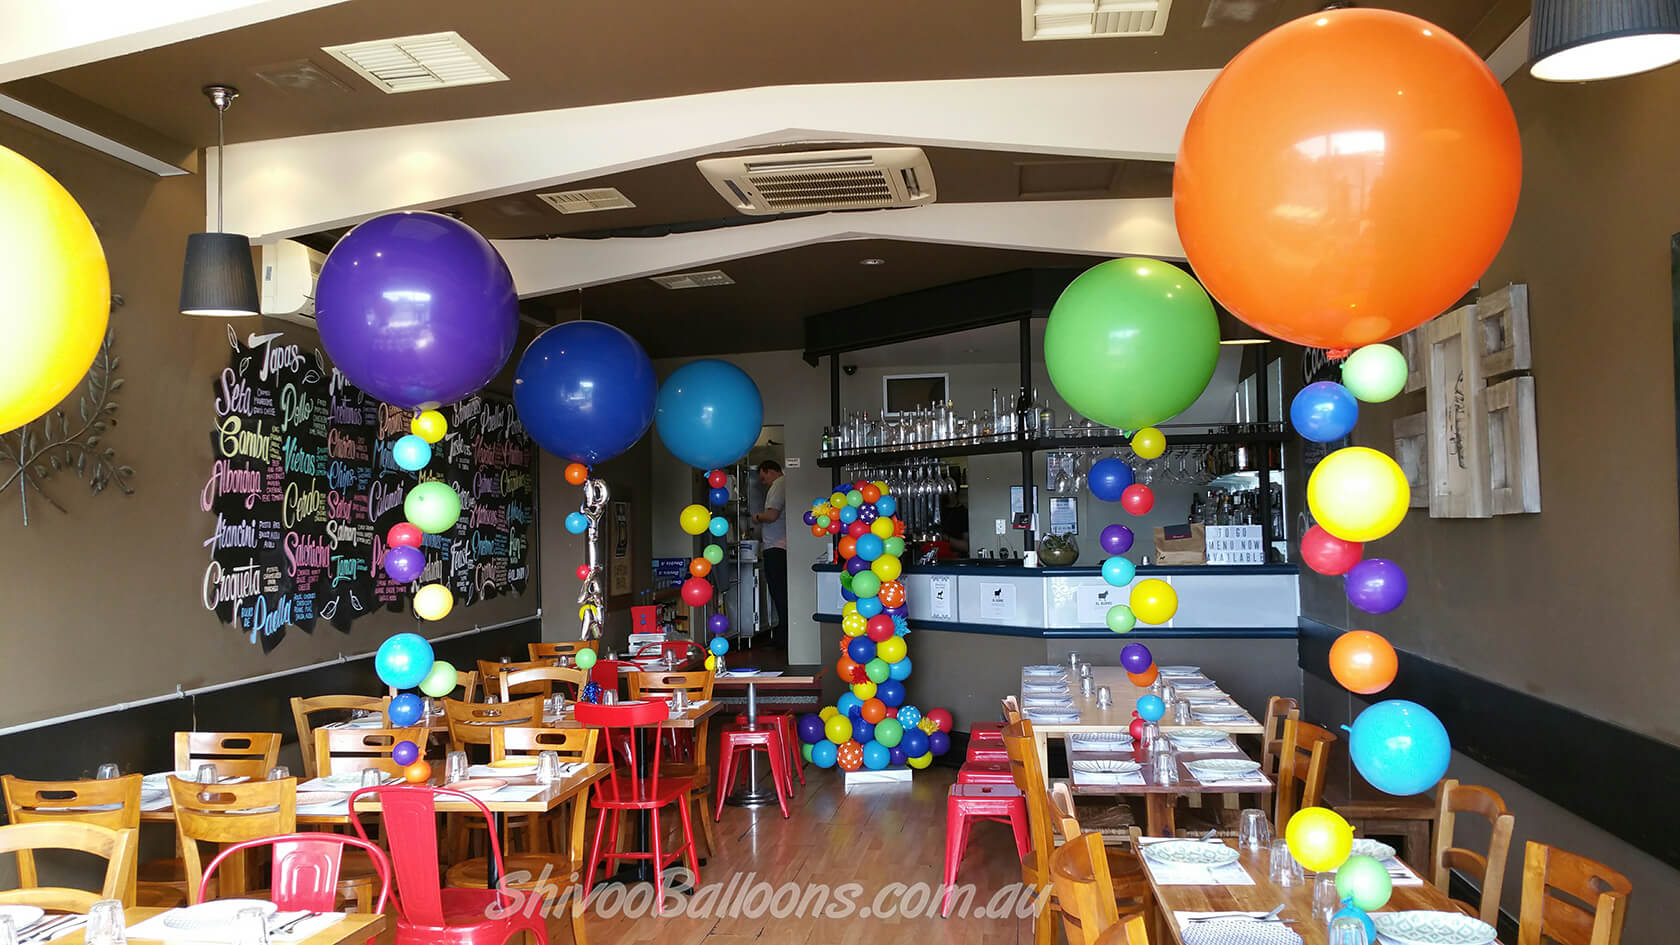 custom balloon arrangements - see our events - Corporate Balloons - shivoo balloons and decor specialists in coburg north